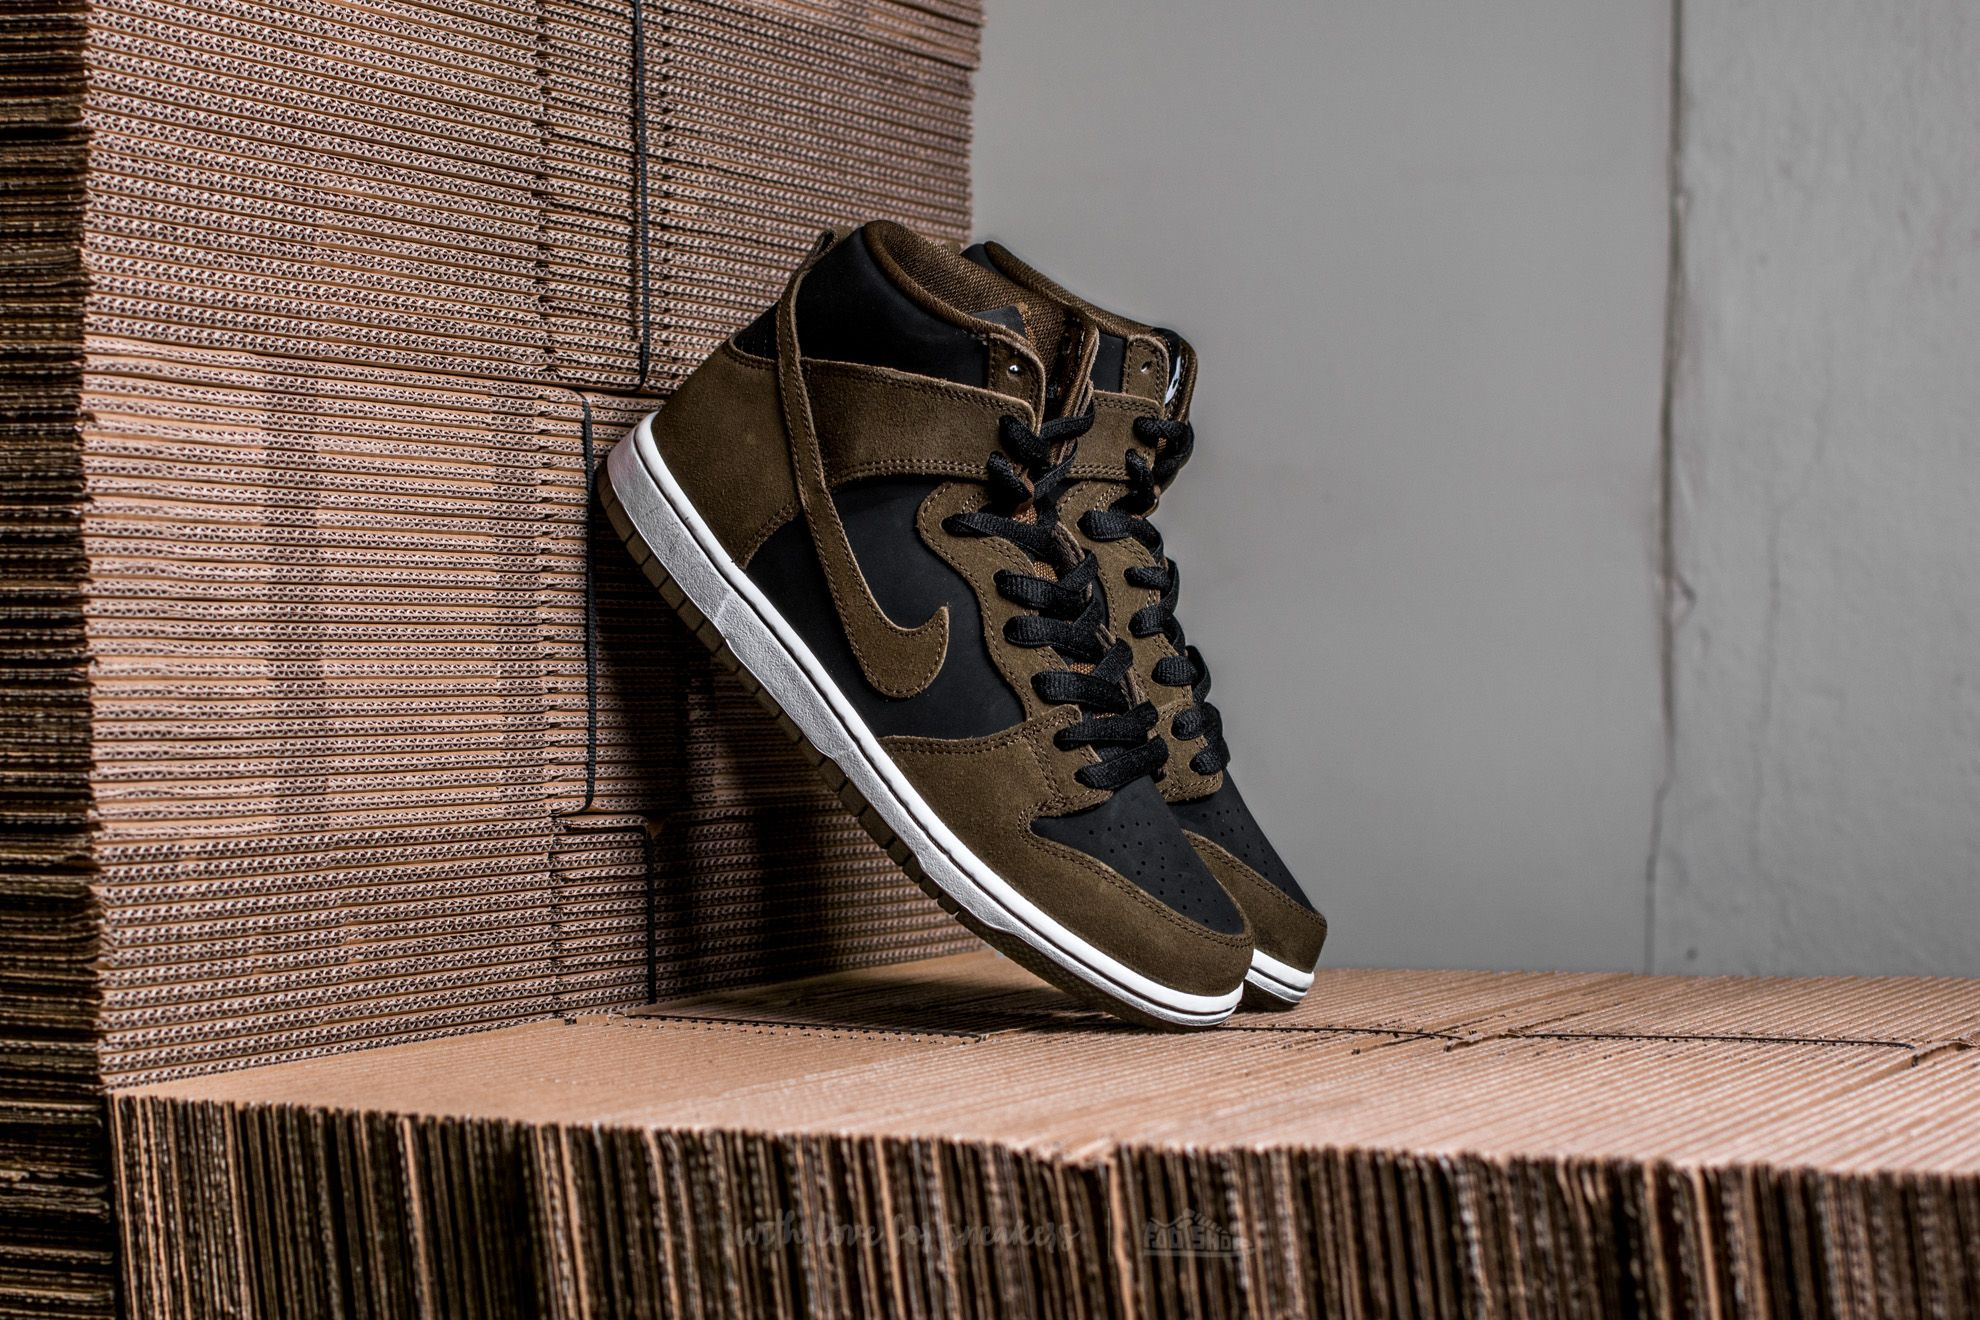 Nike SB Zoom Dunk High Pro Dark Loden/ Dark Loden-Black